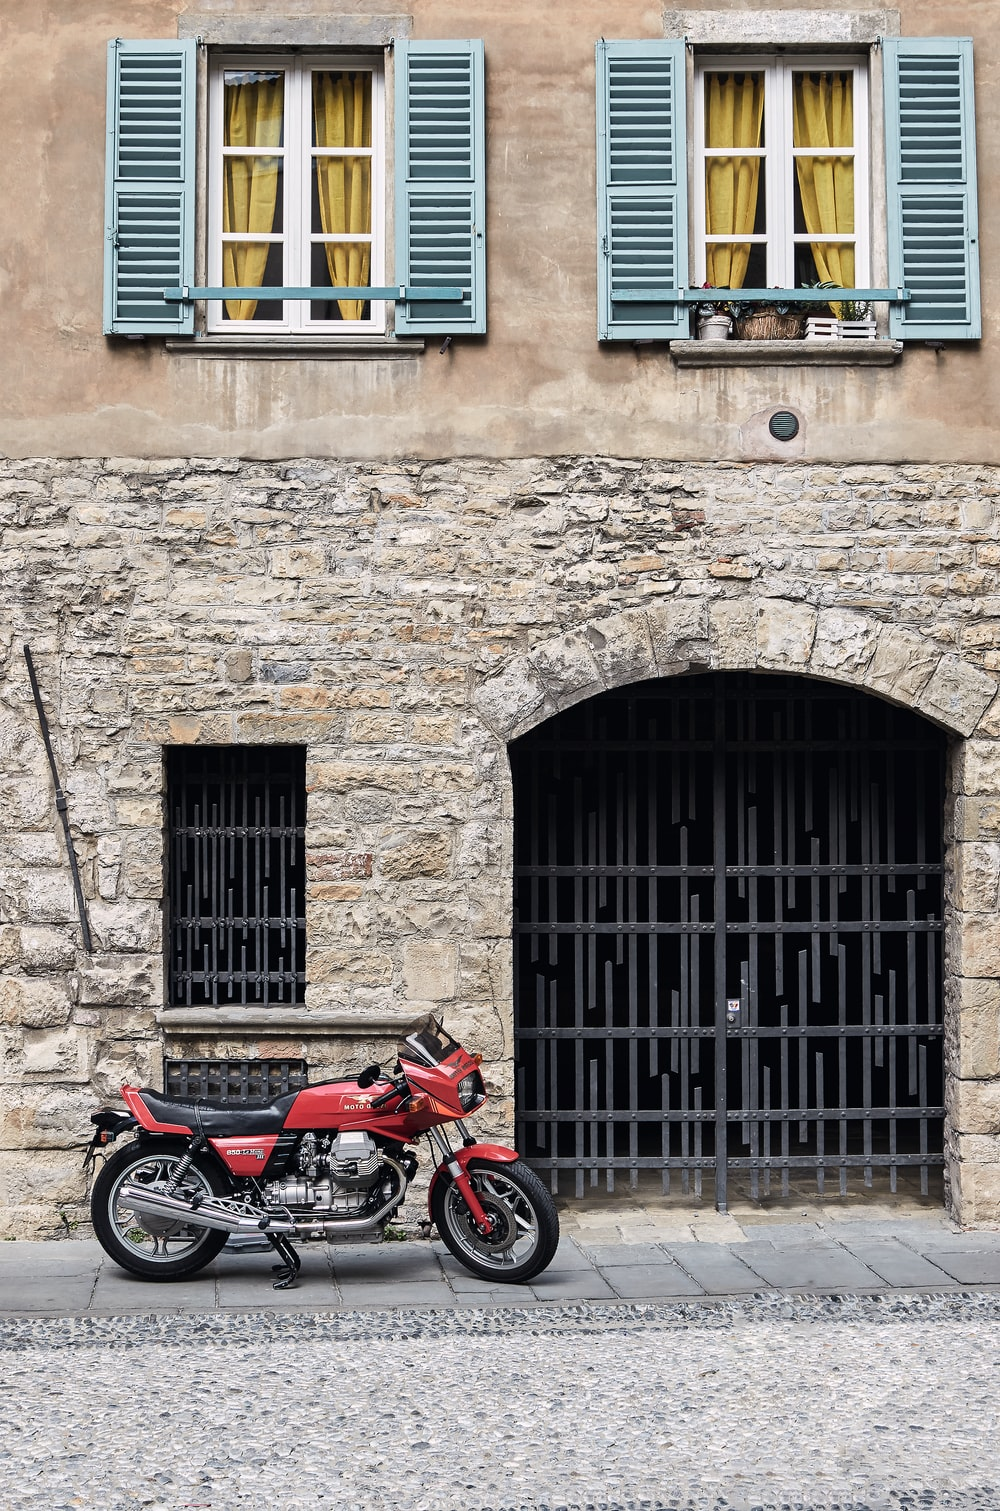 red and black motorcycle parked beside brown brick building